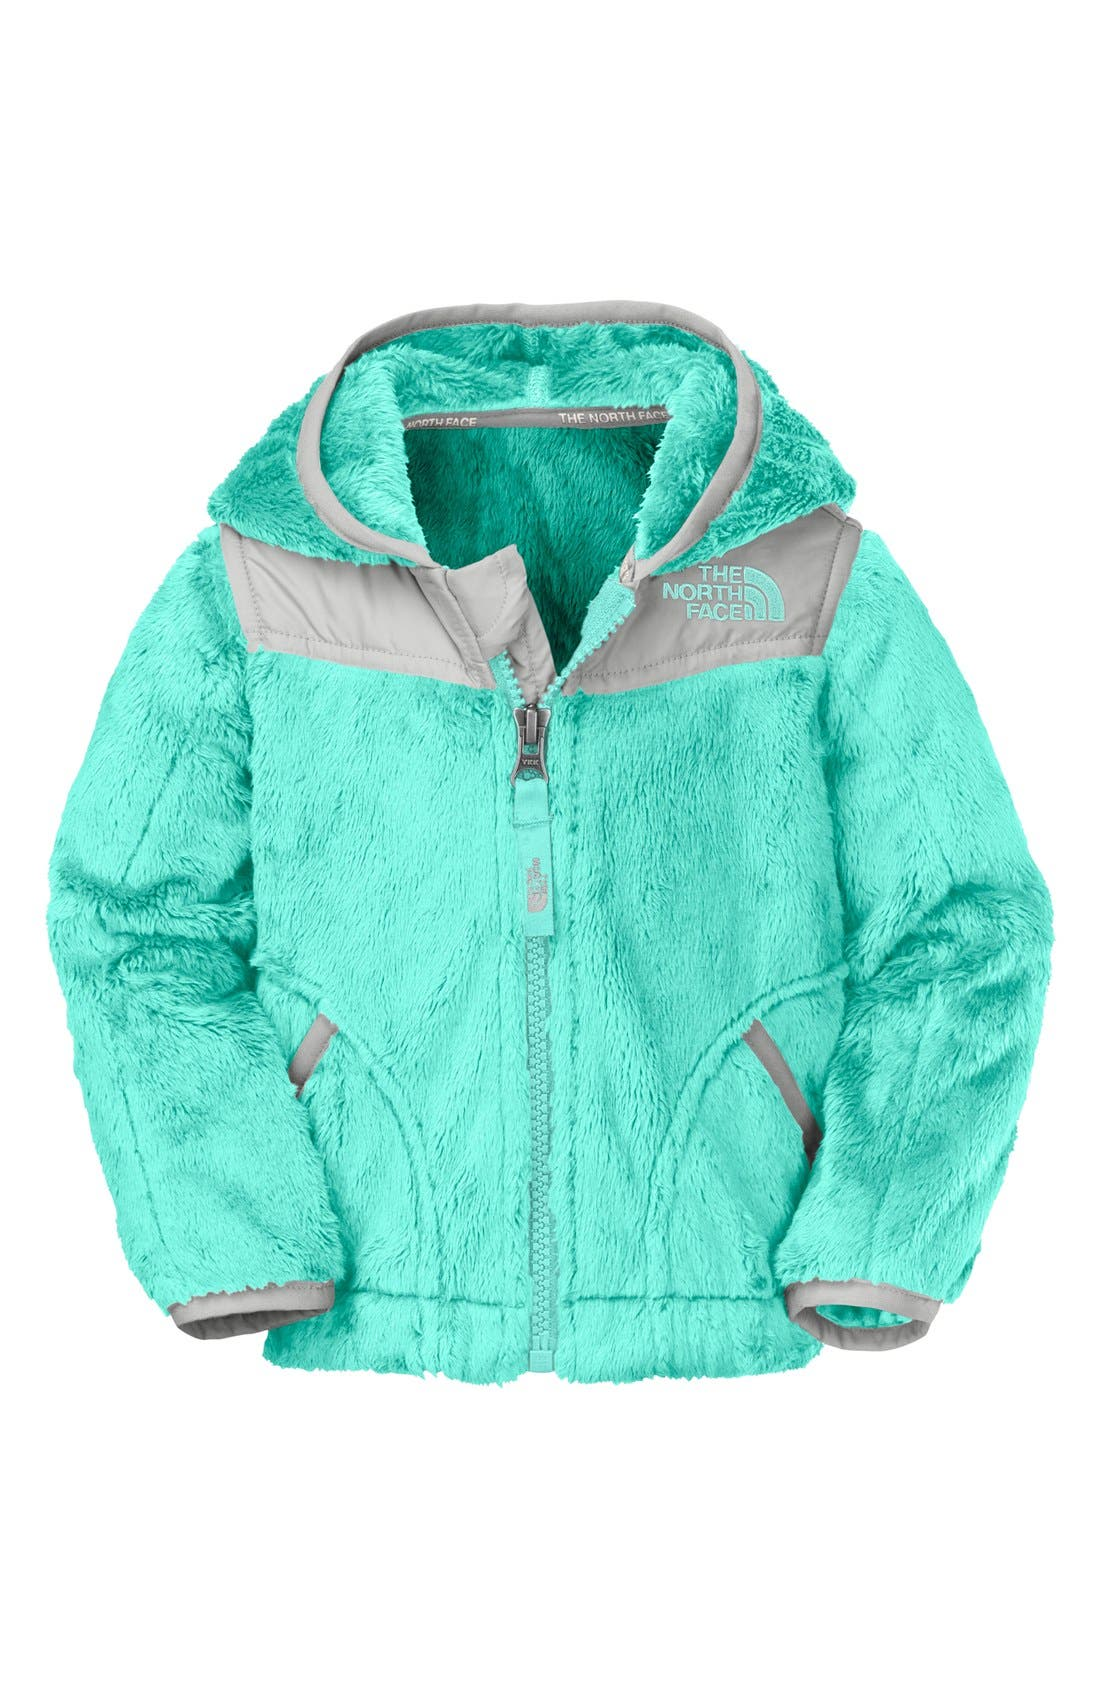 Main Image - The North Face 'Oso' Hooded Fleece Jacket (Baby Girls)